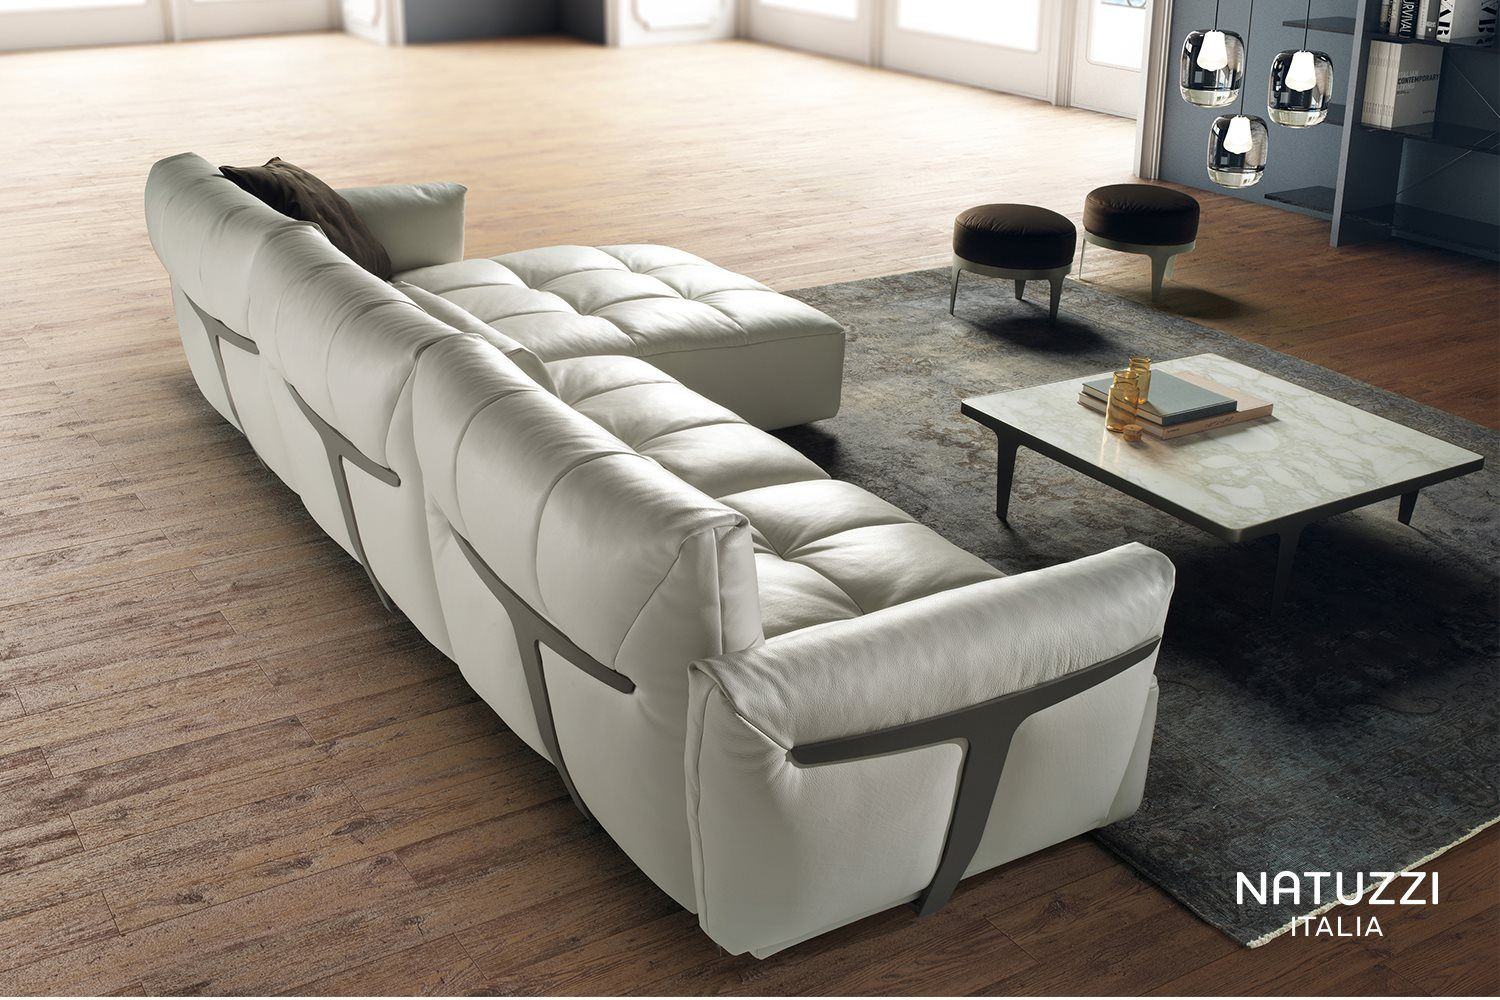 Not Just A Sofa With The Possibility To Combine It In Different